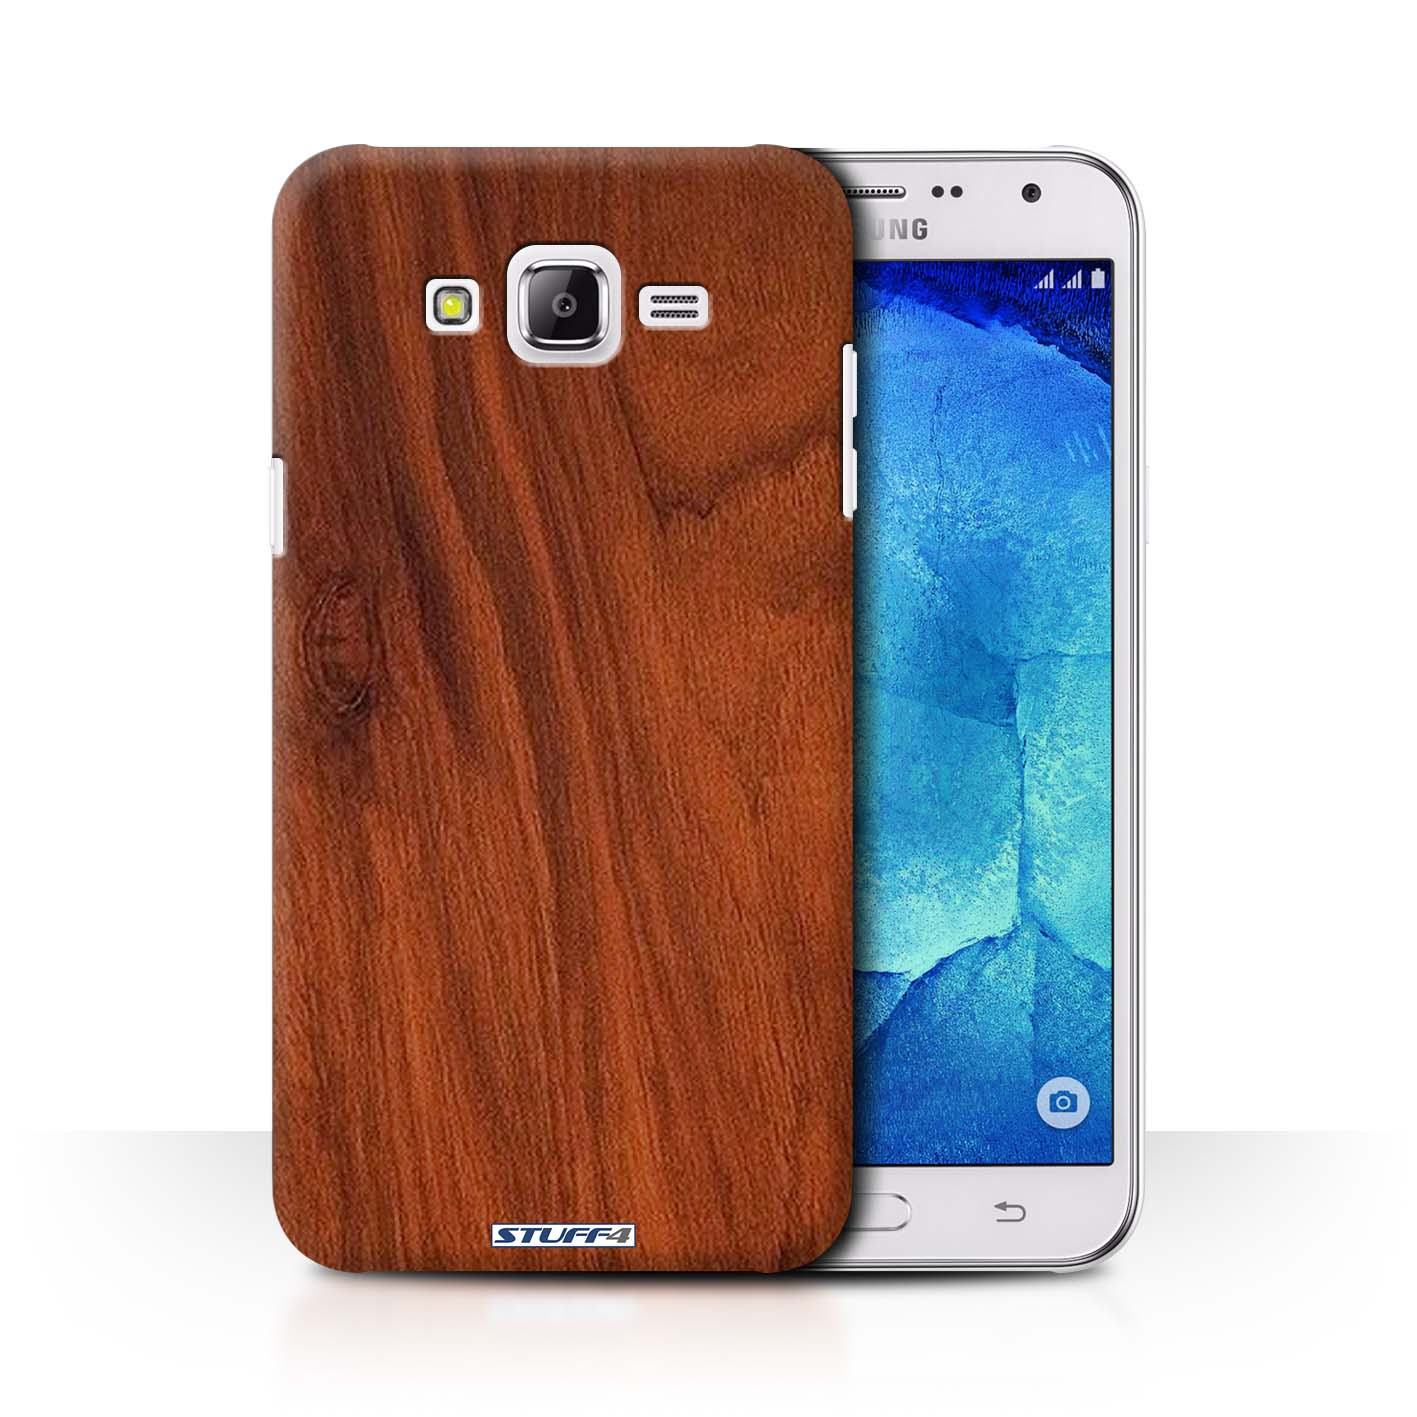 online retailer ad978 812c9 Protective Hard Back Case for Samsung Galaxy J7/J700 / Wood Grain  Effect/Pattern Collection / Mahogany